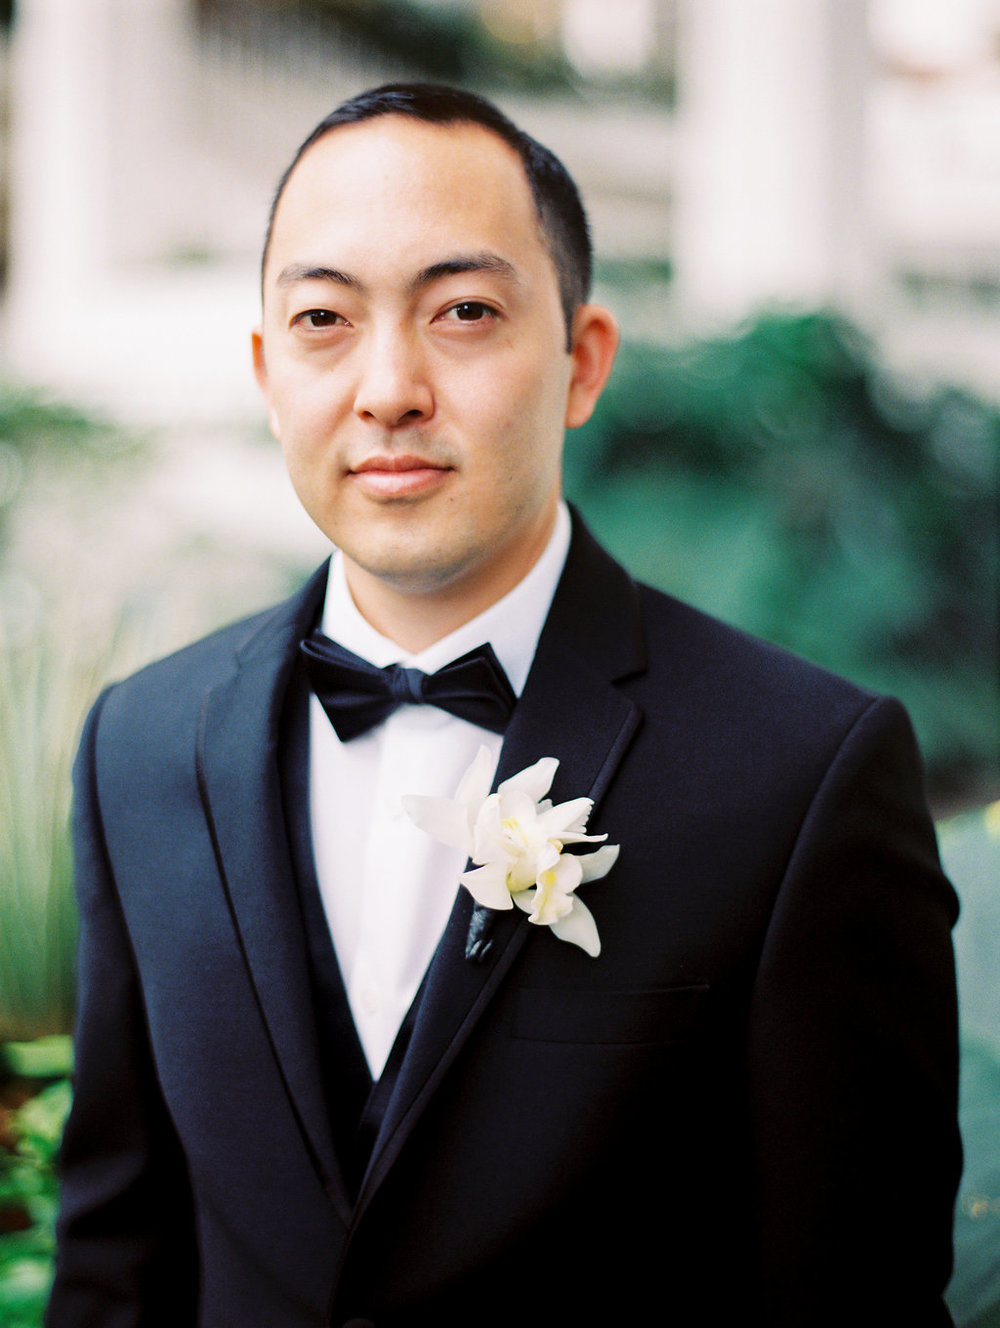 groom-four-seasons-oahu-wedding-1.jpg